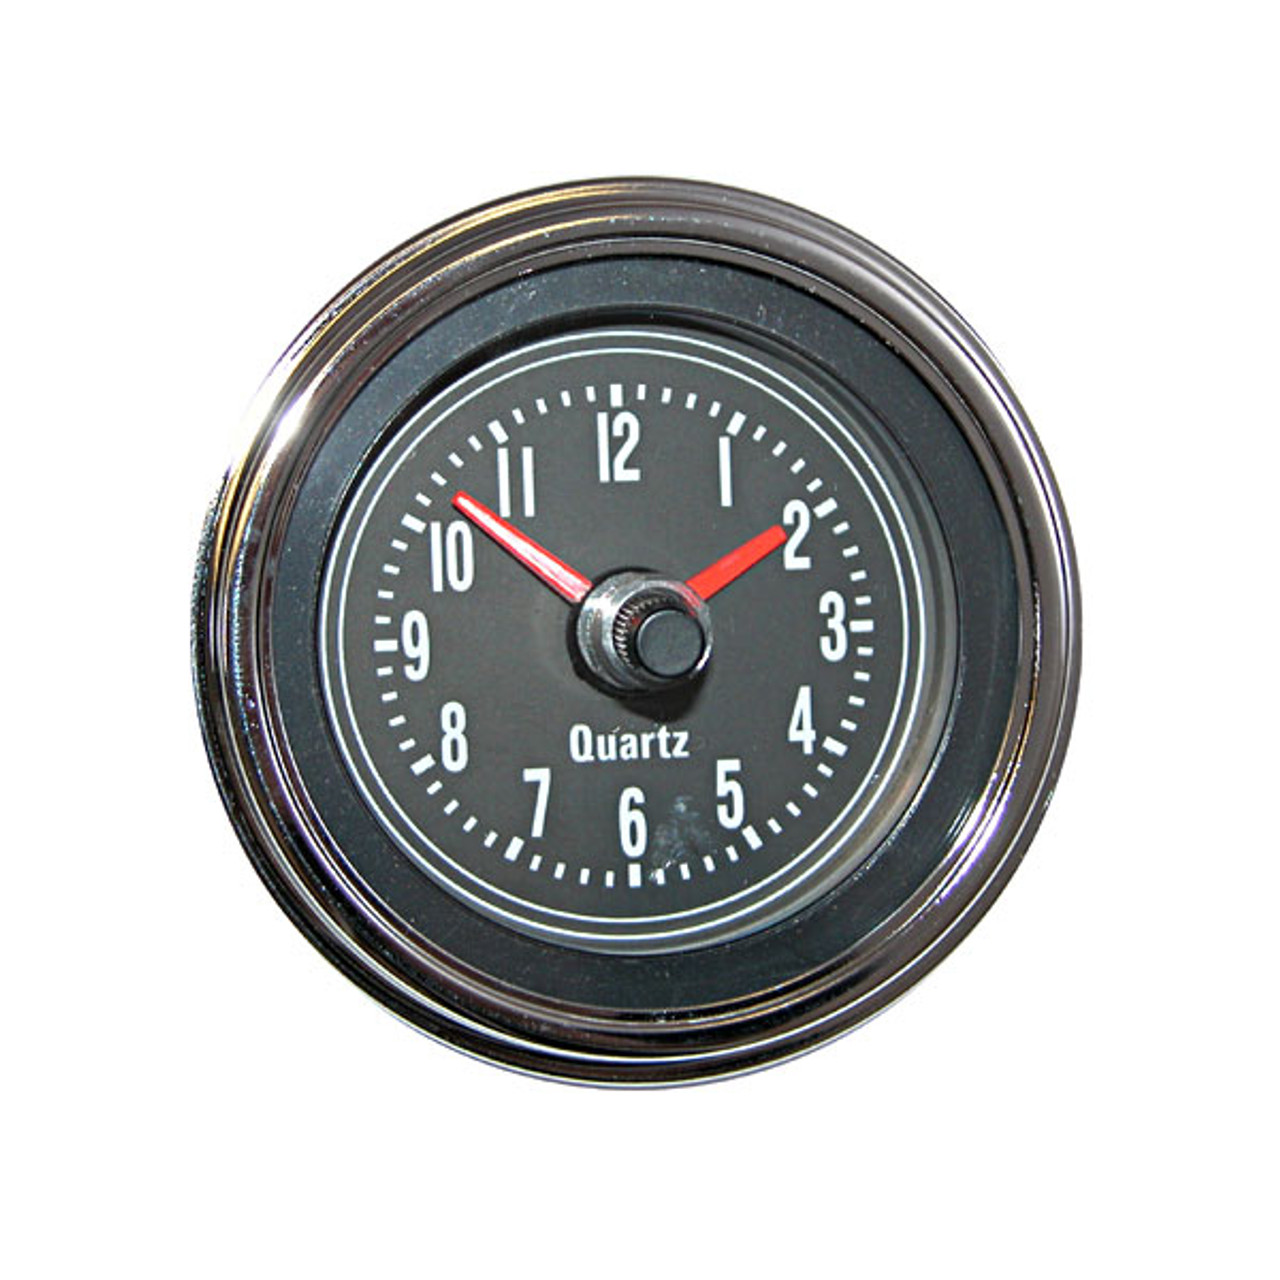 Omix-Ada, 17215.01 - Dash Clock, 76-86 Jeep CJ Models - Available at on jeep driveline diagram, jeep shift solenoid, jeep gas tank vent, jeep hoses diagram, jeep wiring time, jeep fuses diagram, jeep horn diagram, jeep o2 sensor wiring, jeep exhaust system diagram, jeep relay wiring, jeep lights diagram, jeep electrical diagram, jeep headlight diagram, jeep pulley diagram, jeep engineering diagram, jeep stock speakers, jeep wiring harness, pioneer deh 150mp instalation diagram, jeep pump diagram, jeep turn signal diagram,